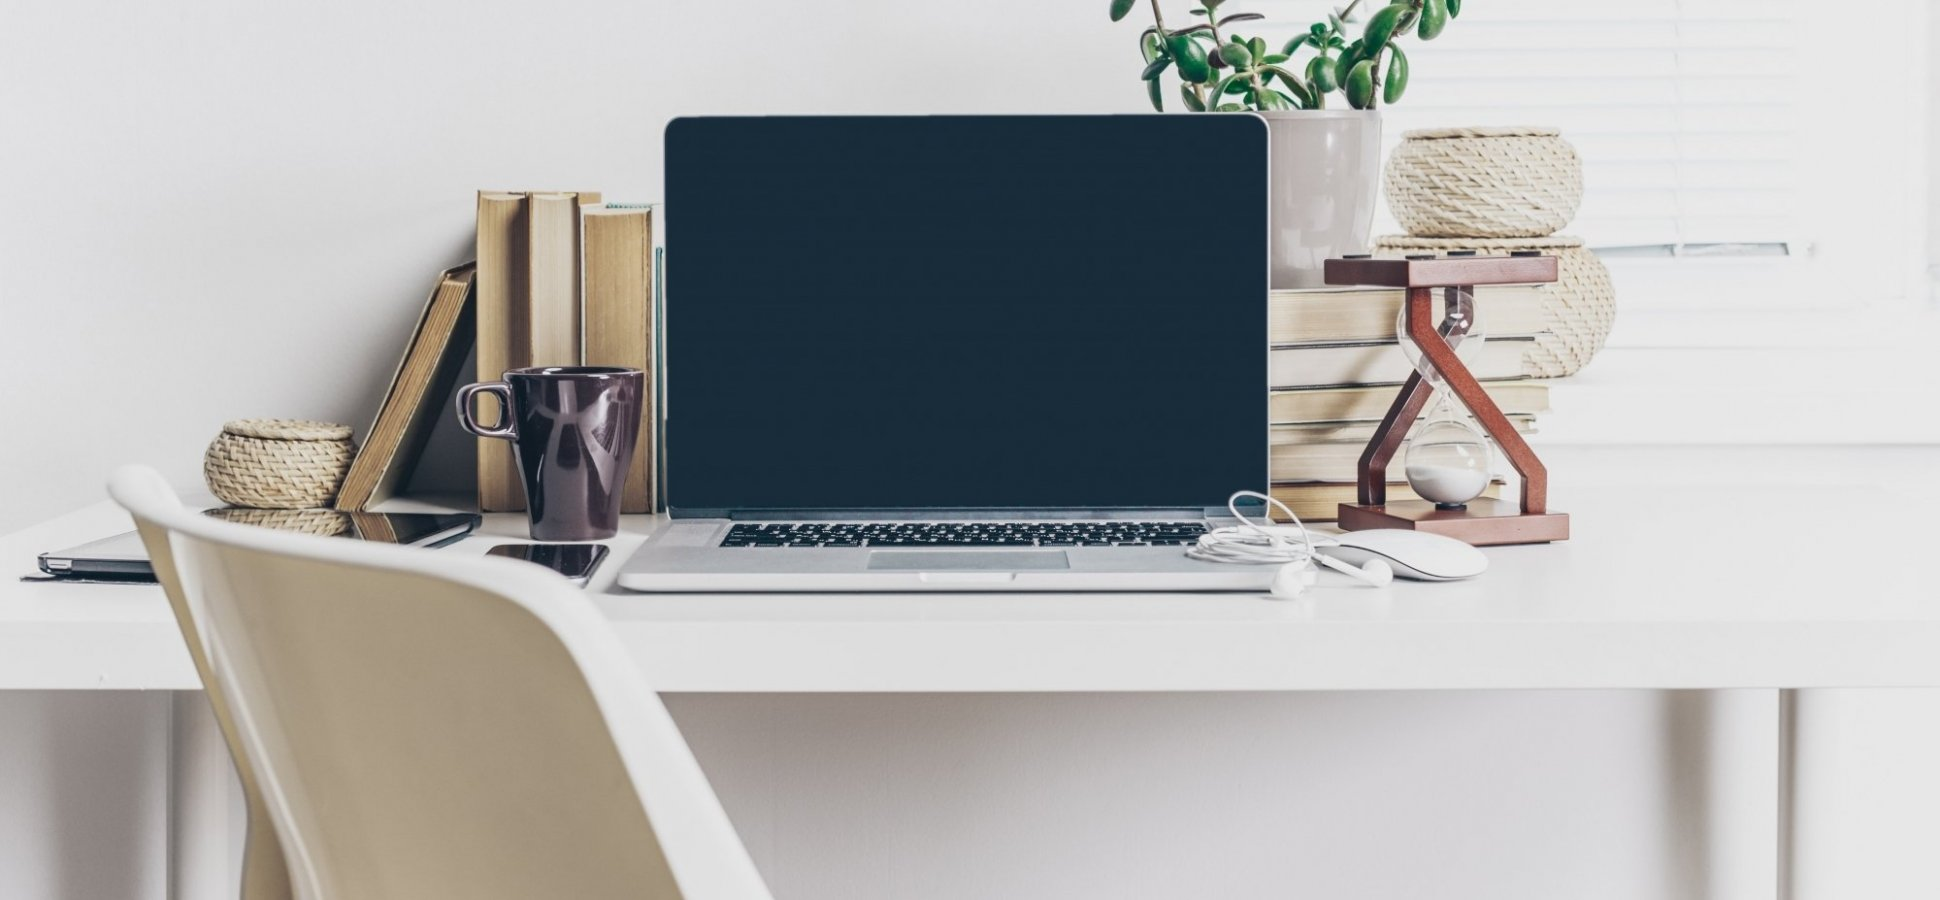 8 Gadgets Every Remote Worker Needs for the Perfect Home Office Tech Setup